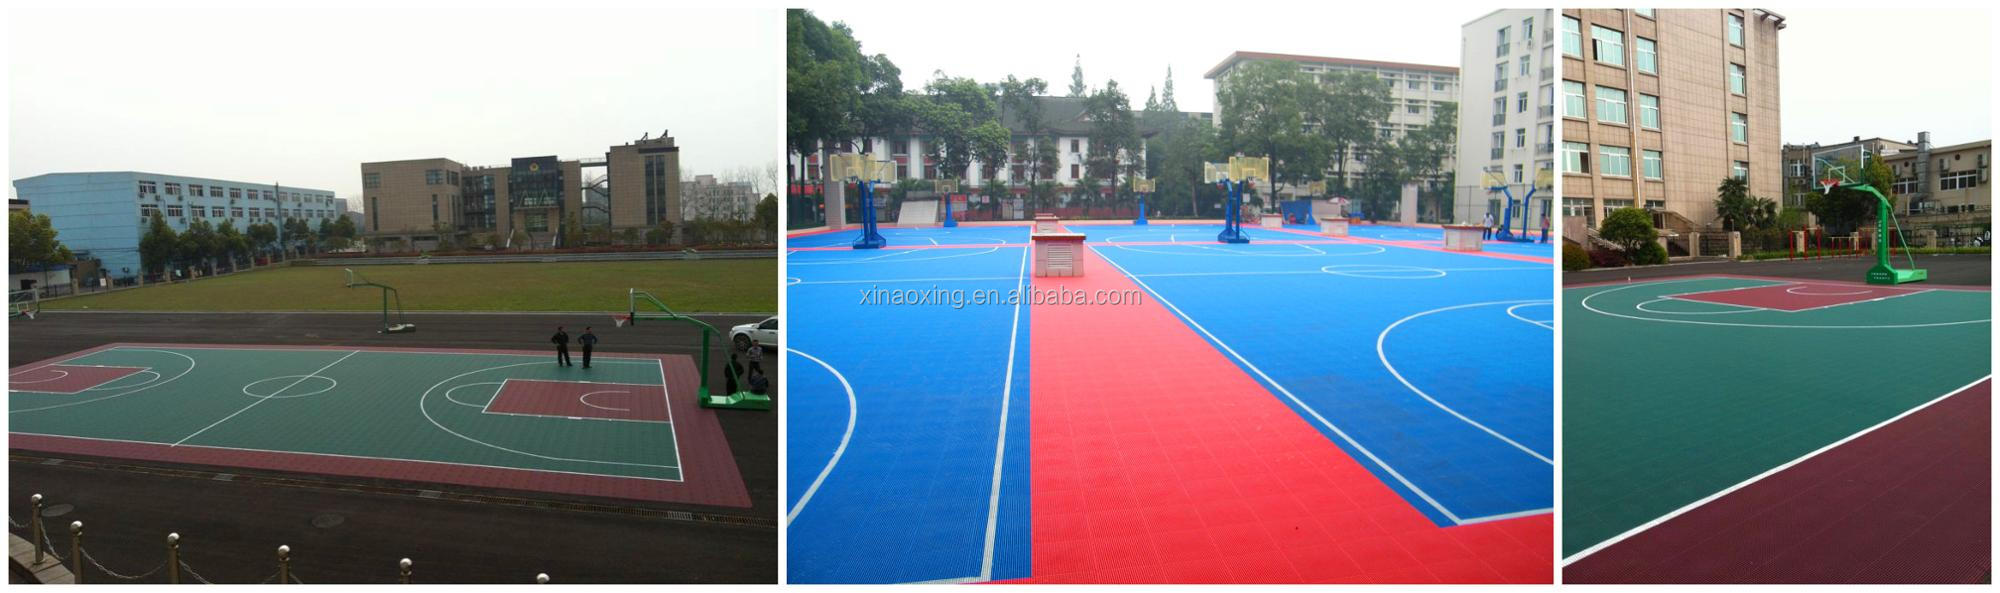 Outdoor interlocking basketball court sports floor pp tile